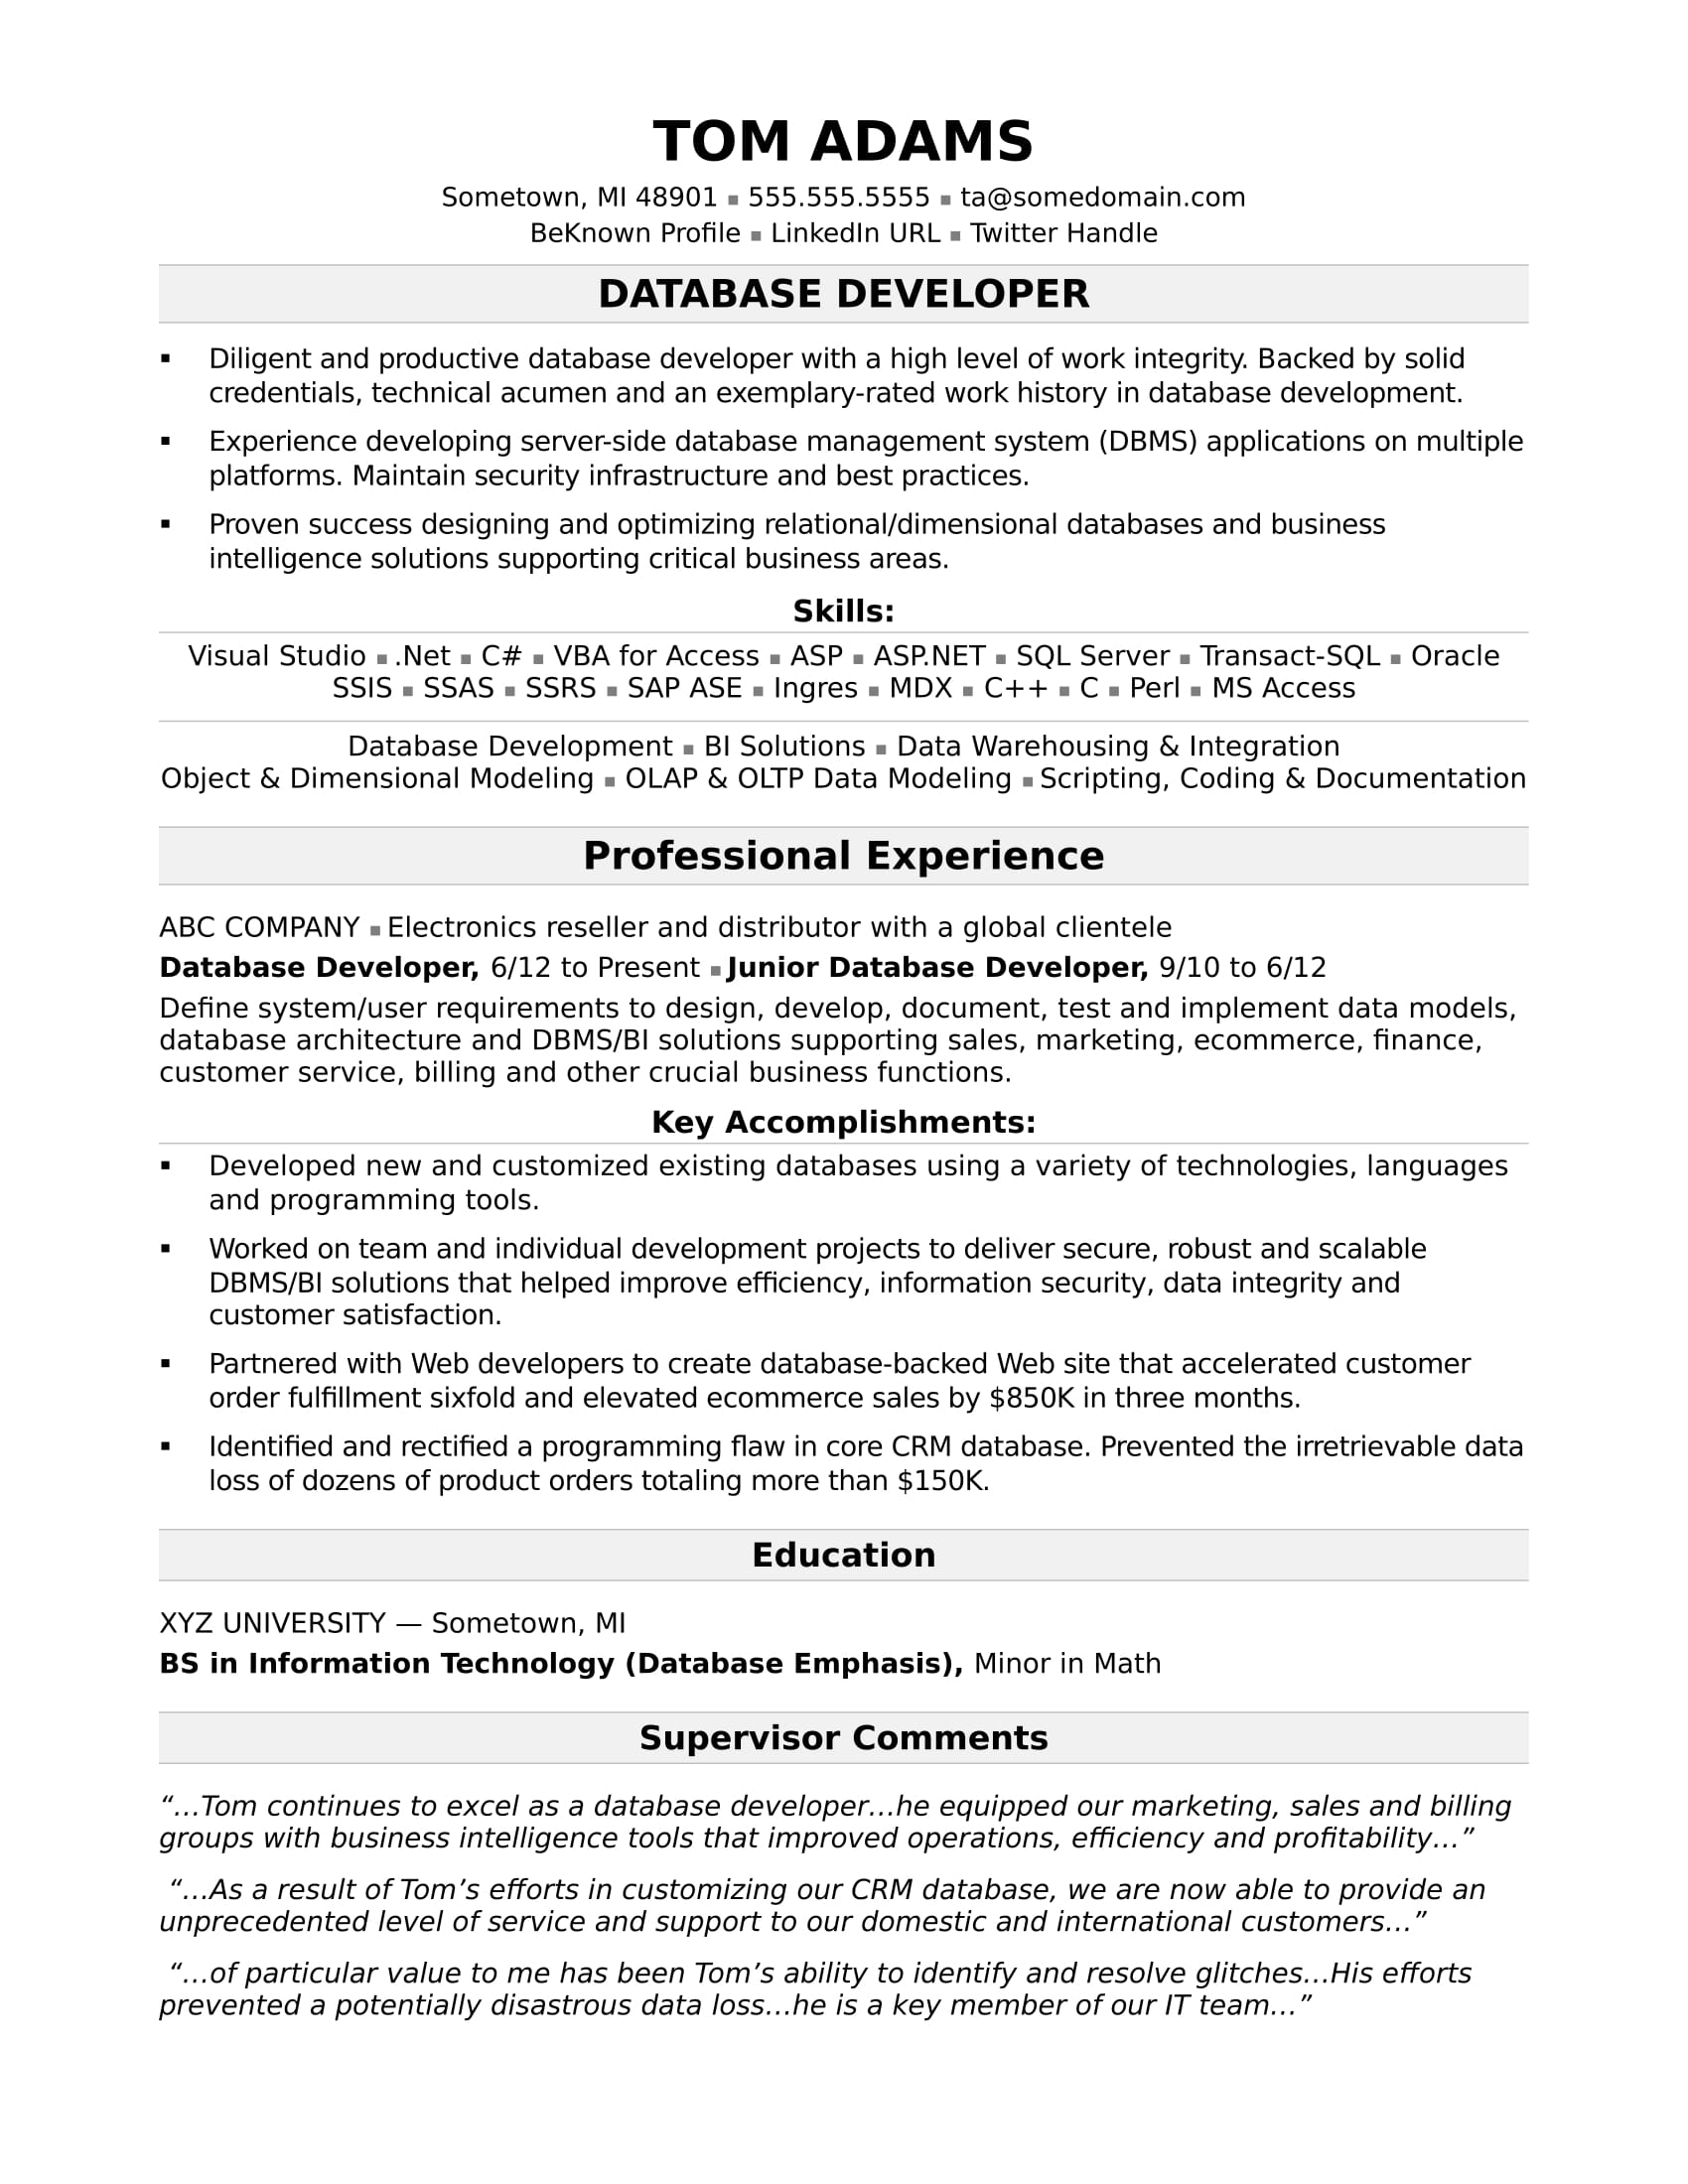 Sample Resume for a Midlevel IT Developer | Monster com